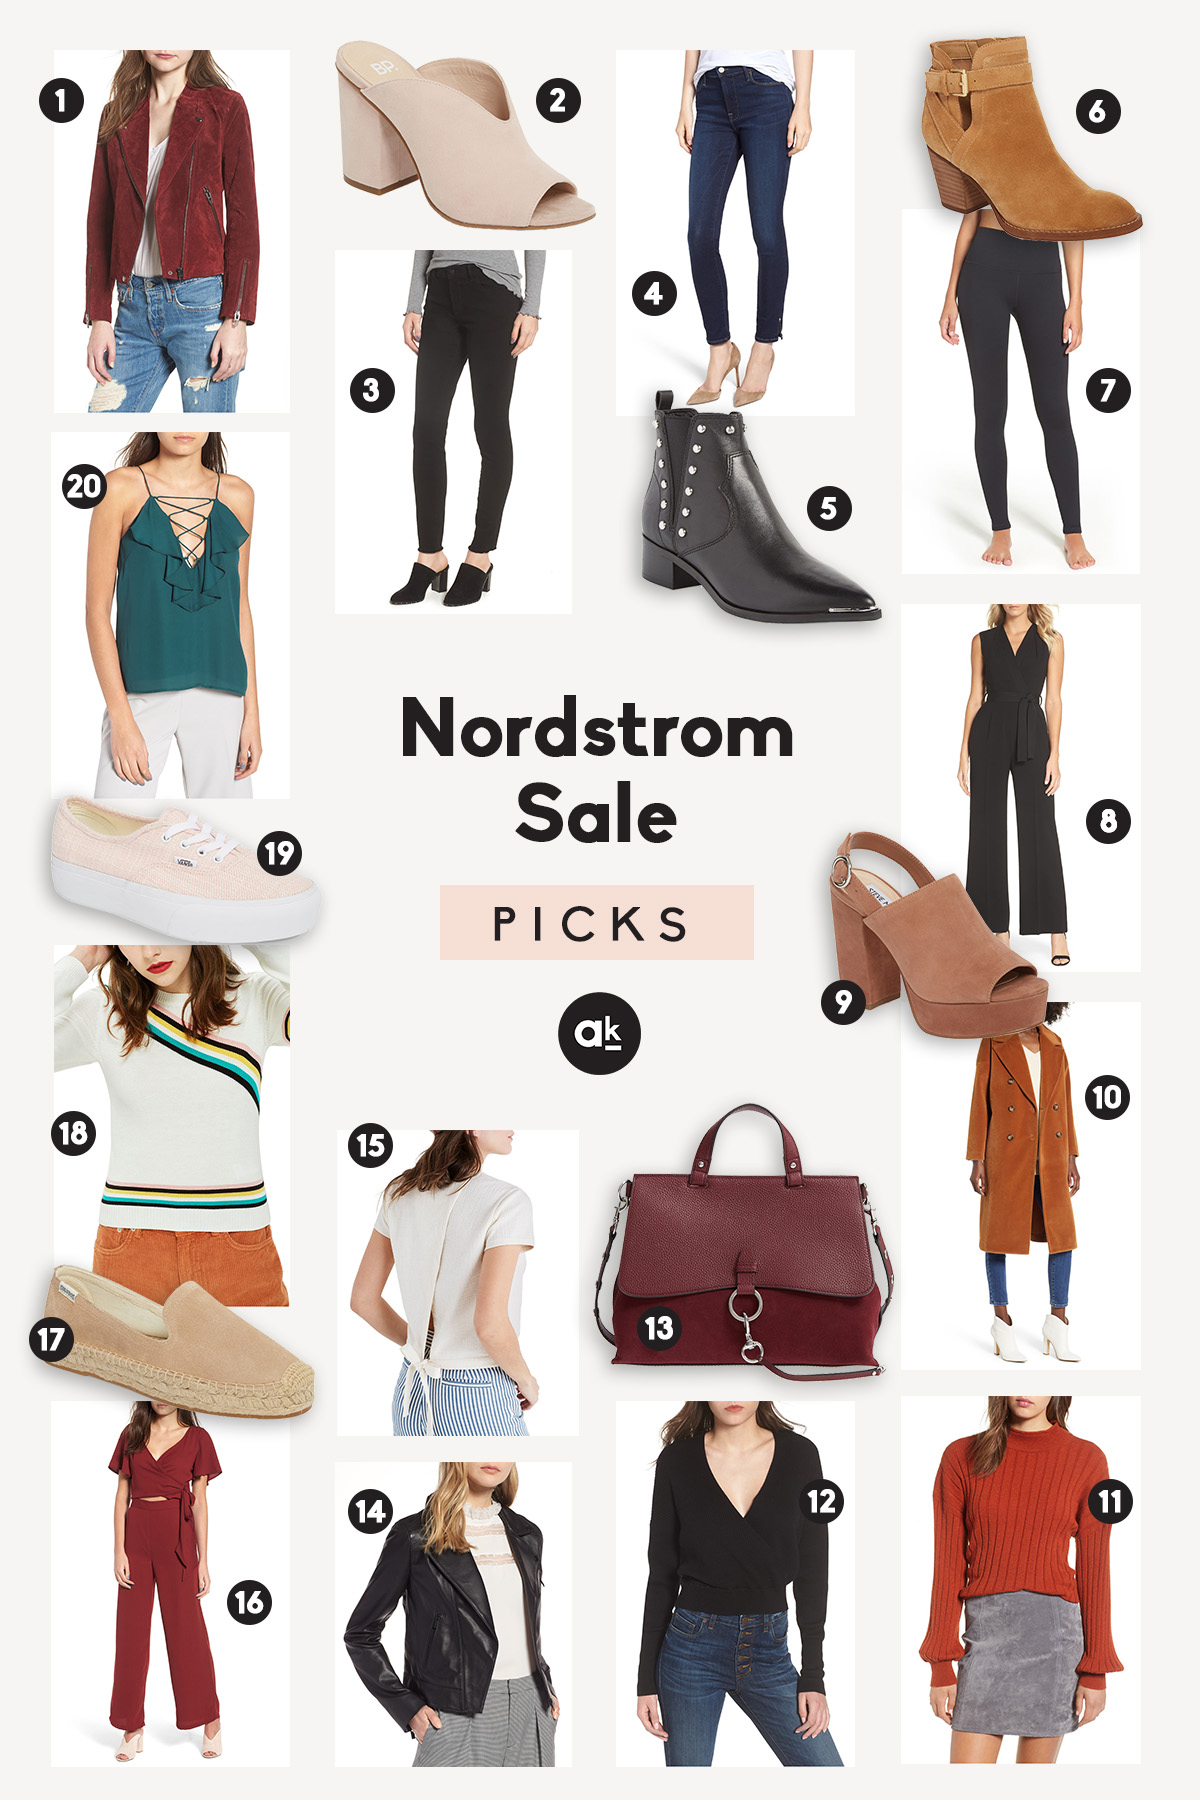 Our top 20 picks from the 2018 Nordstrom Anniversary Sale! From new jeans and booties to cozy sweaters and fun jumpsuits, there's something for everyone in here.